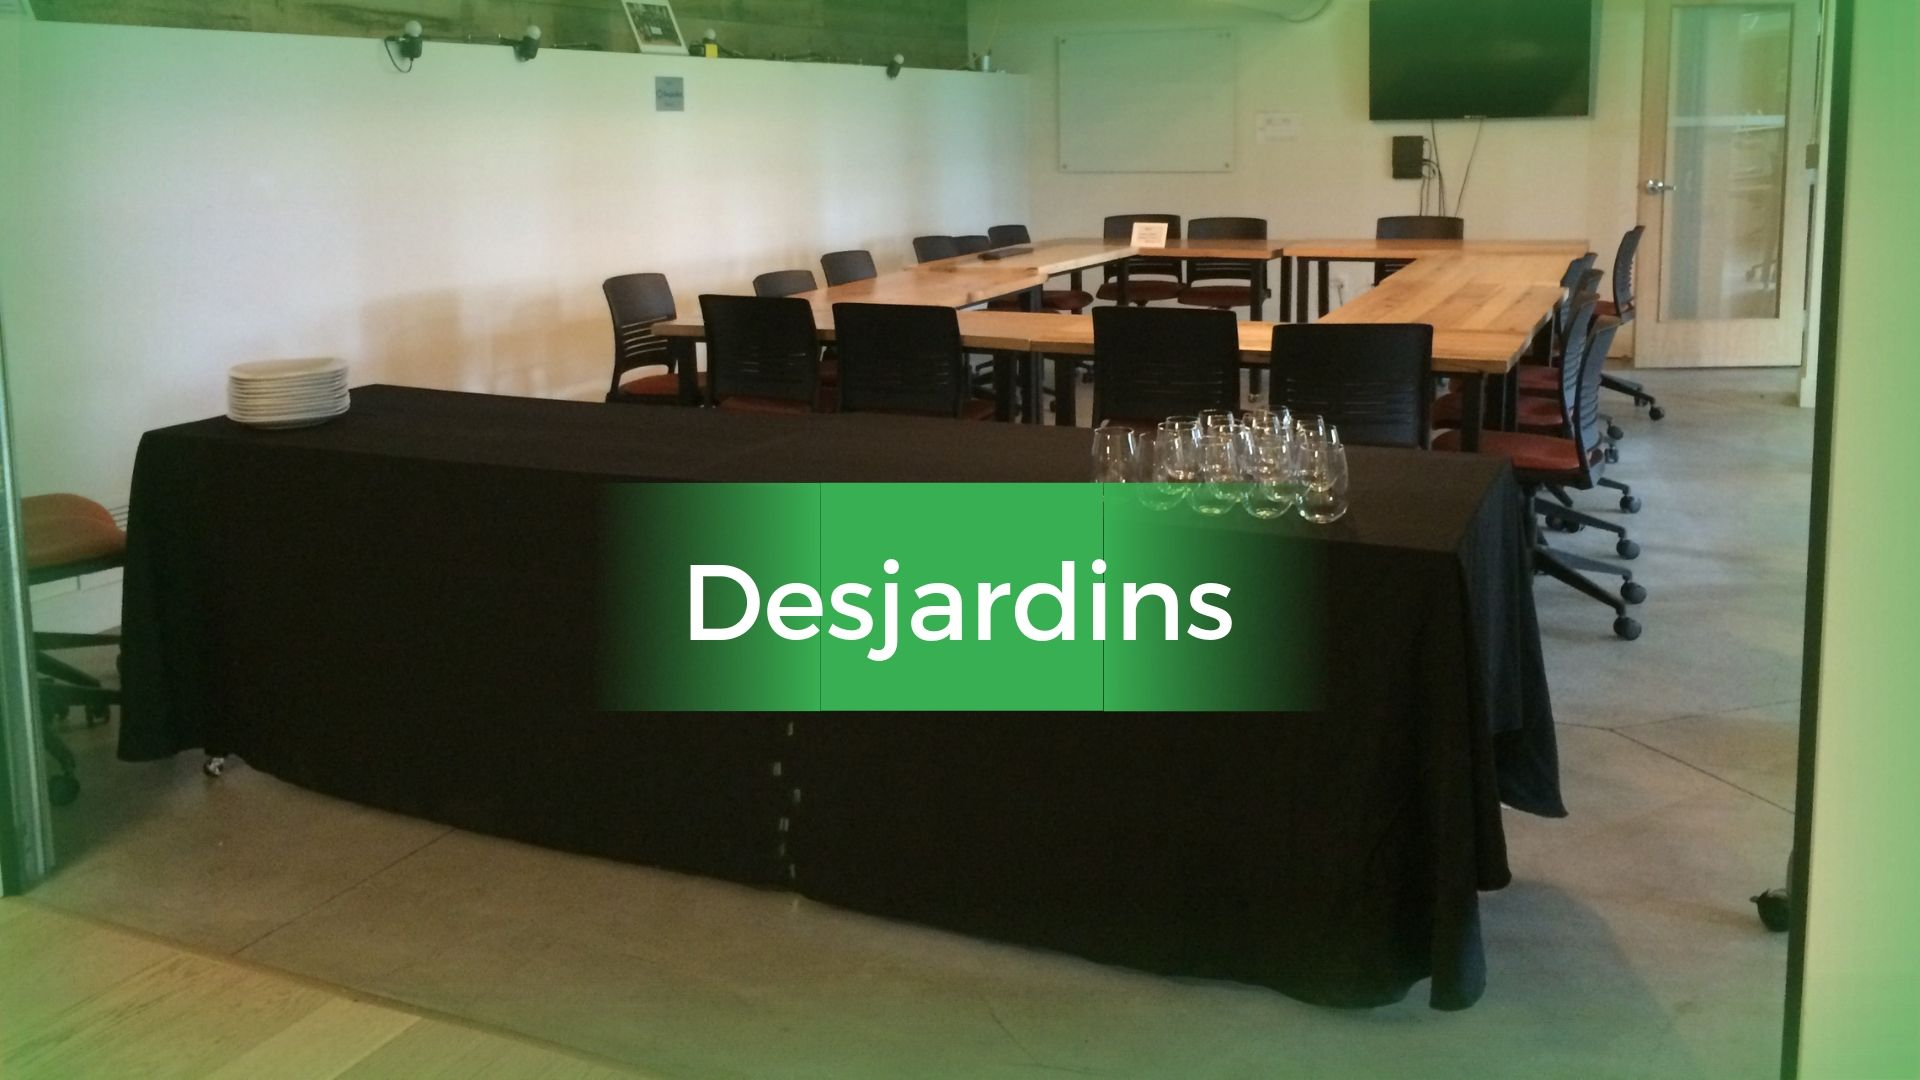 Desjardins Room (20-30 people; 20 chairs; computer; keyboard; mouse; screen; whiteboard; markers) [$40/hr]